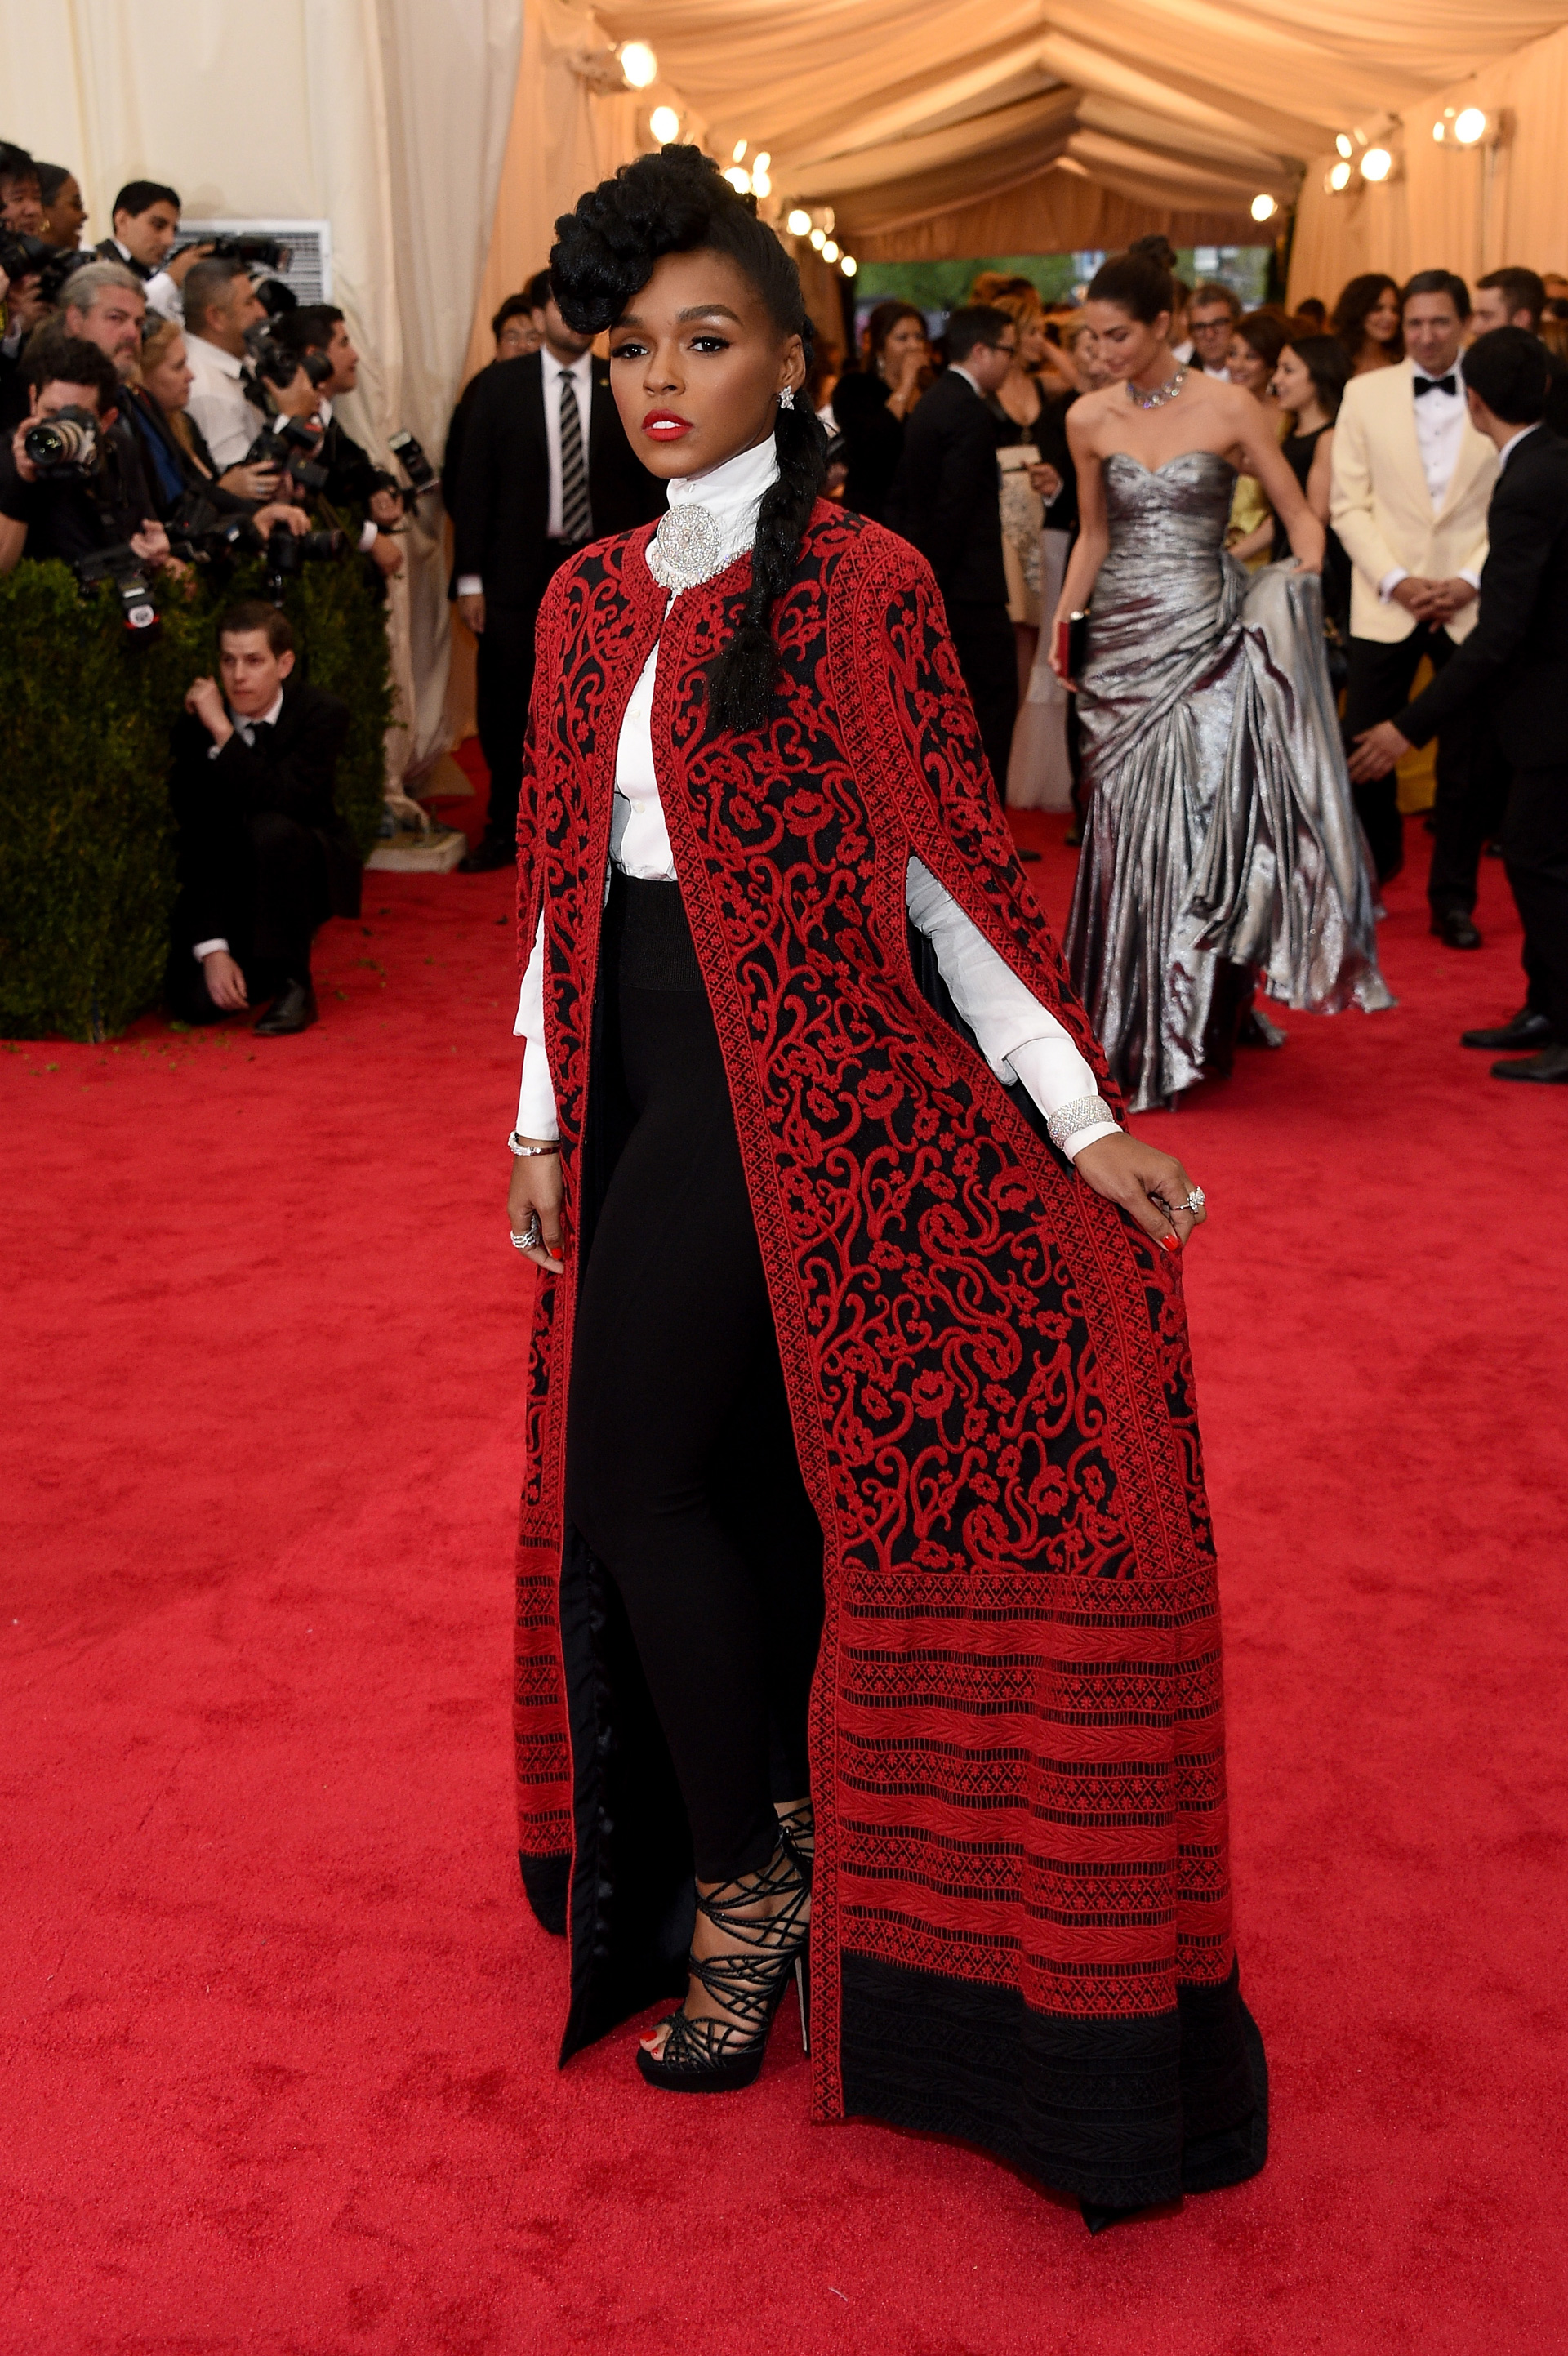 Janelle Monae at the 2014 Met Gala